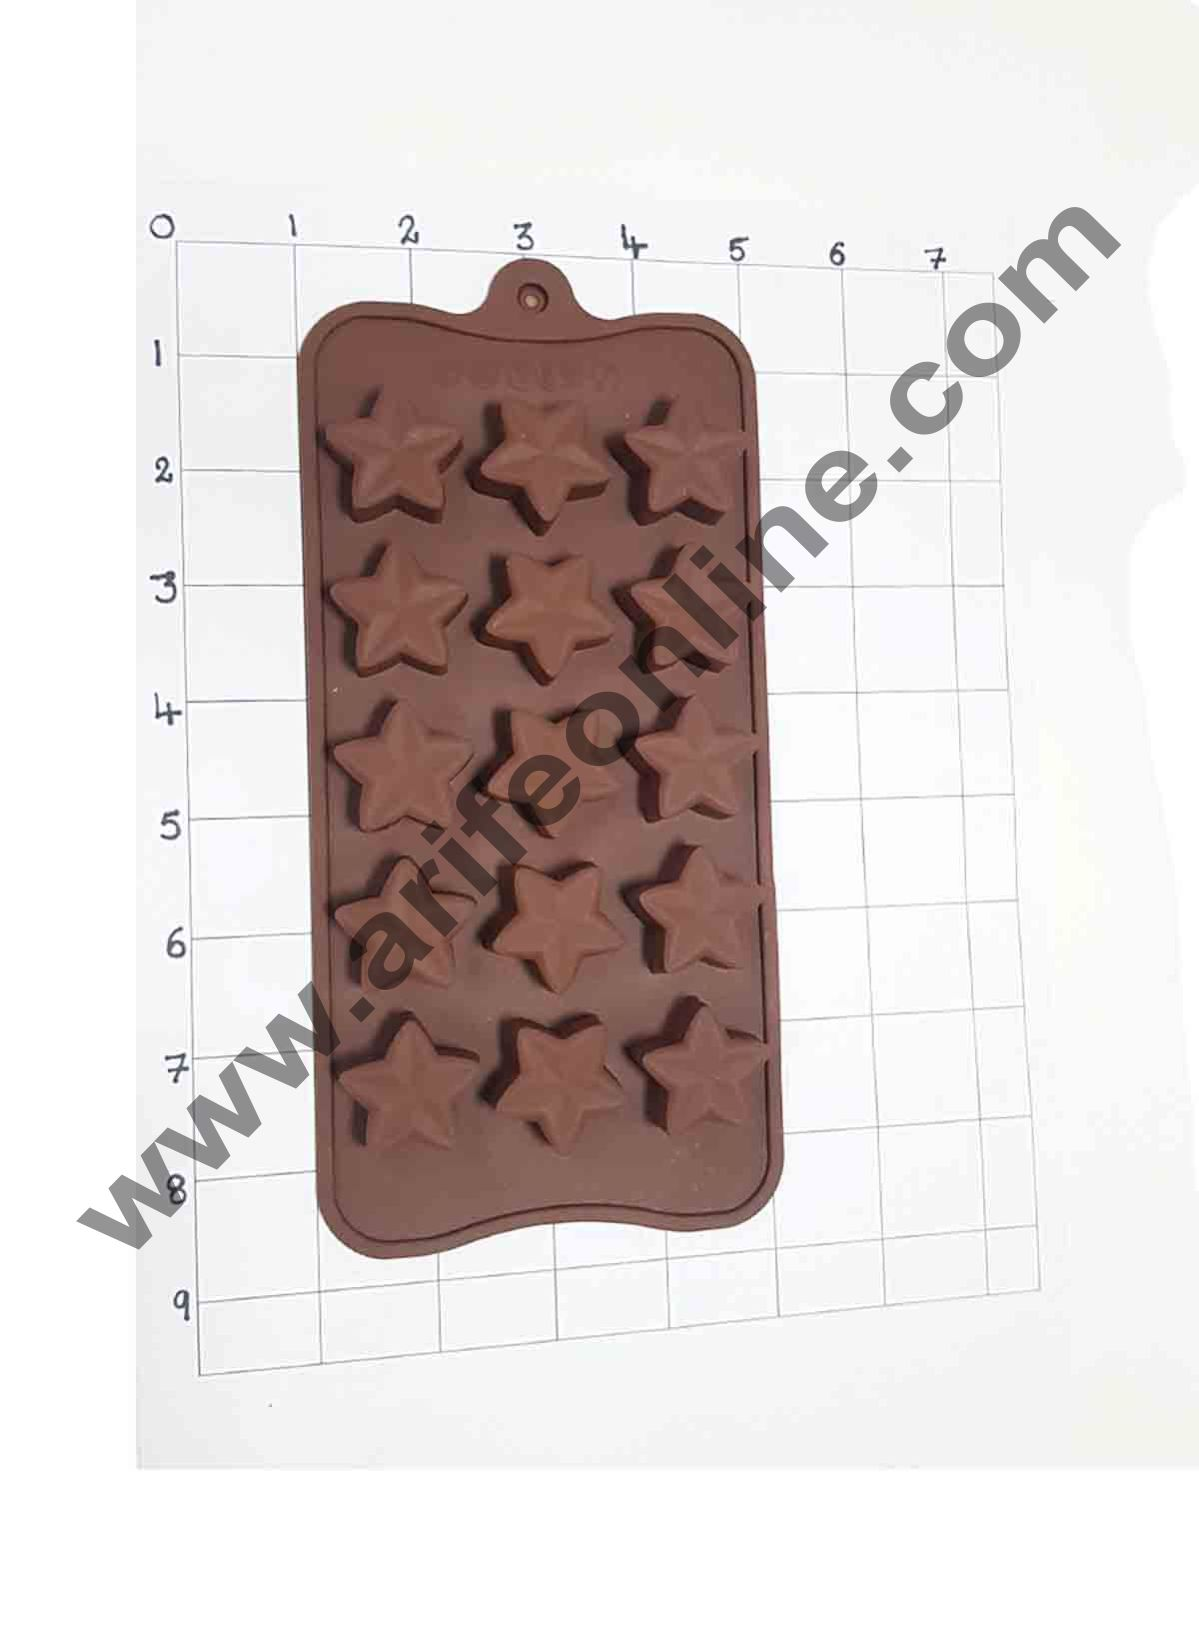 Cake Decor Silicon 15 Cavity Star Design Brown Chocolate Mould, Ice Mould, Chocolate Decorating Mould